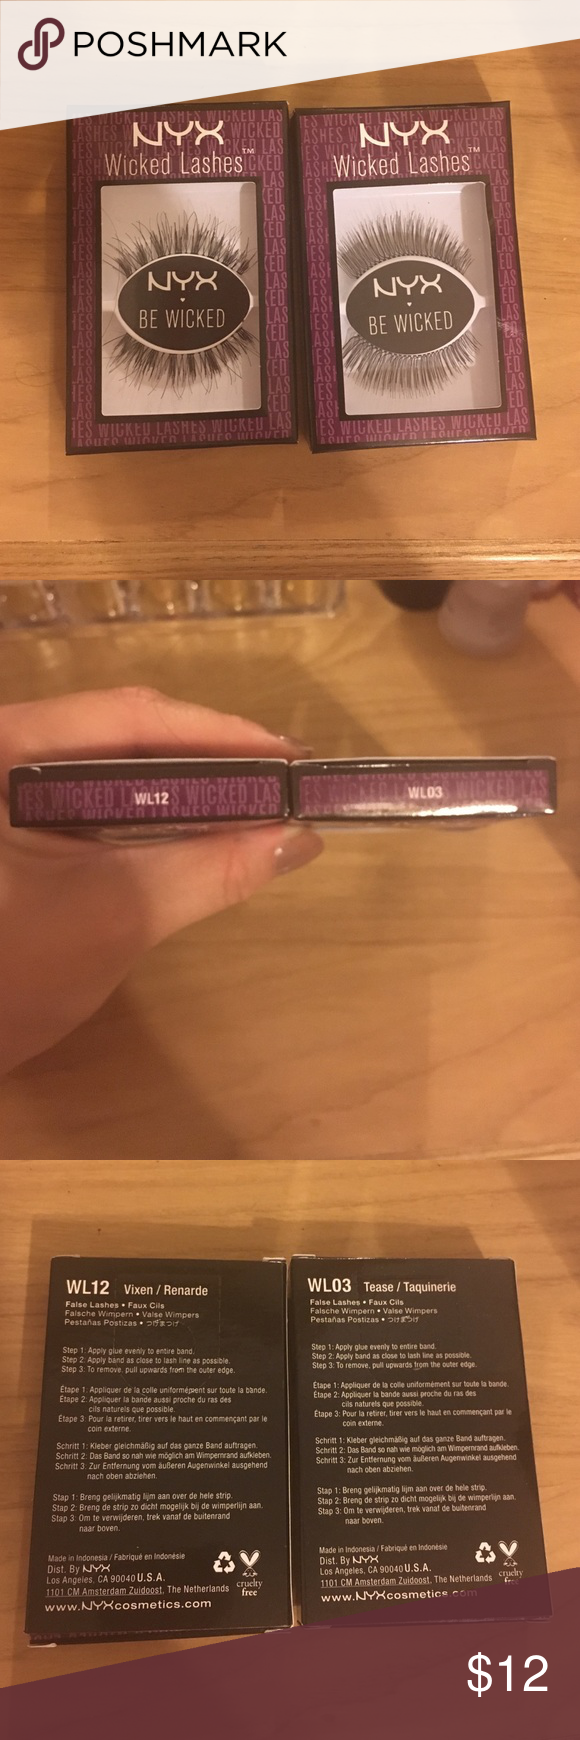 8d37ee14444 Nyx wicked lashes Brand new, box on left is WL12 vixen/renarde, box on  right WL03 tease/taquinerie Makeup False Eyelashes